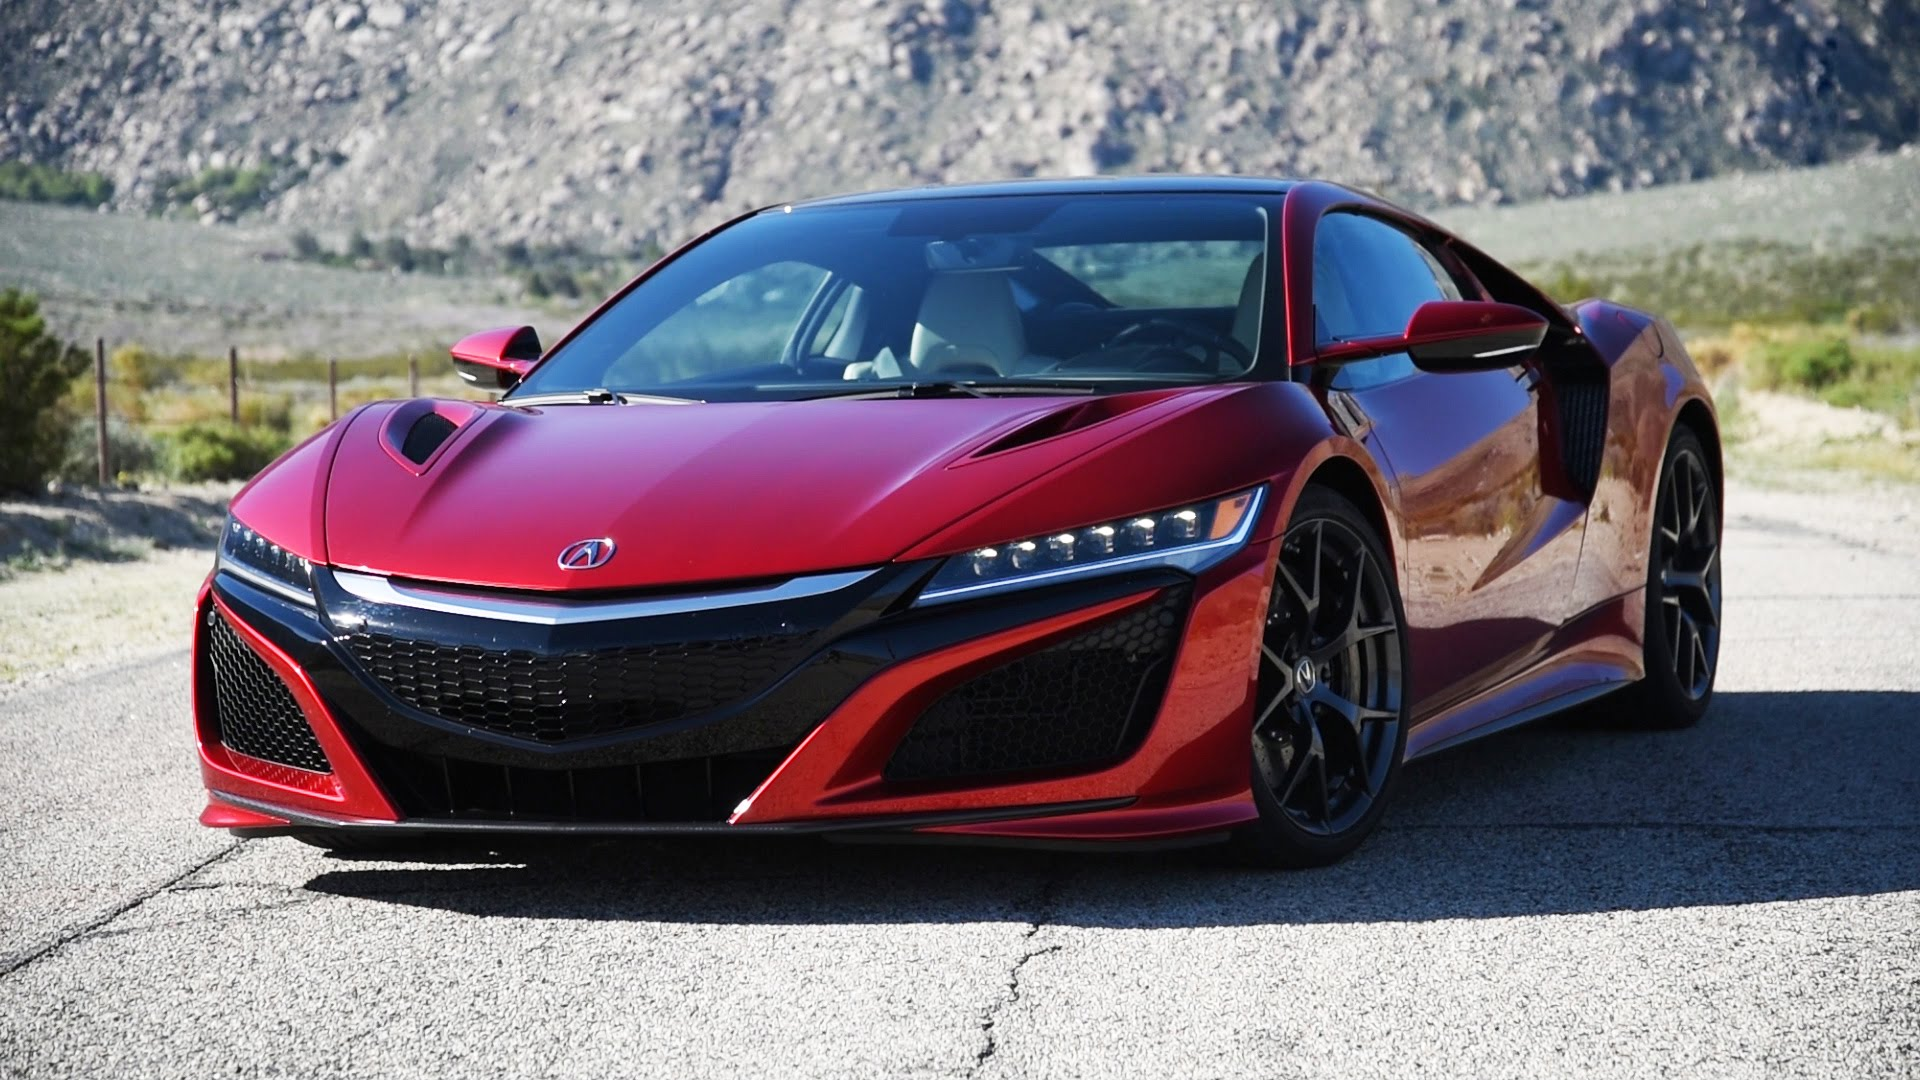 2017 acura nsx review gearopen. Black Bedroom Furniture Sets. Home Design Ideas